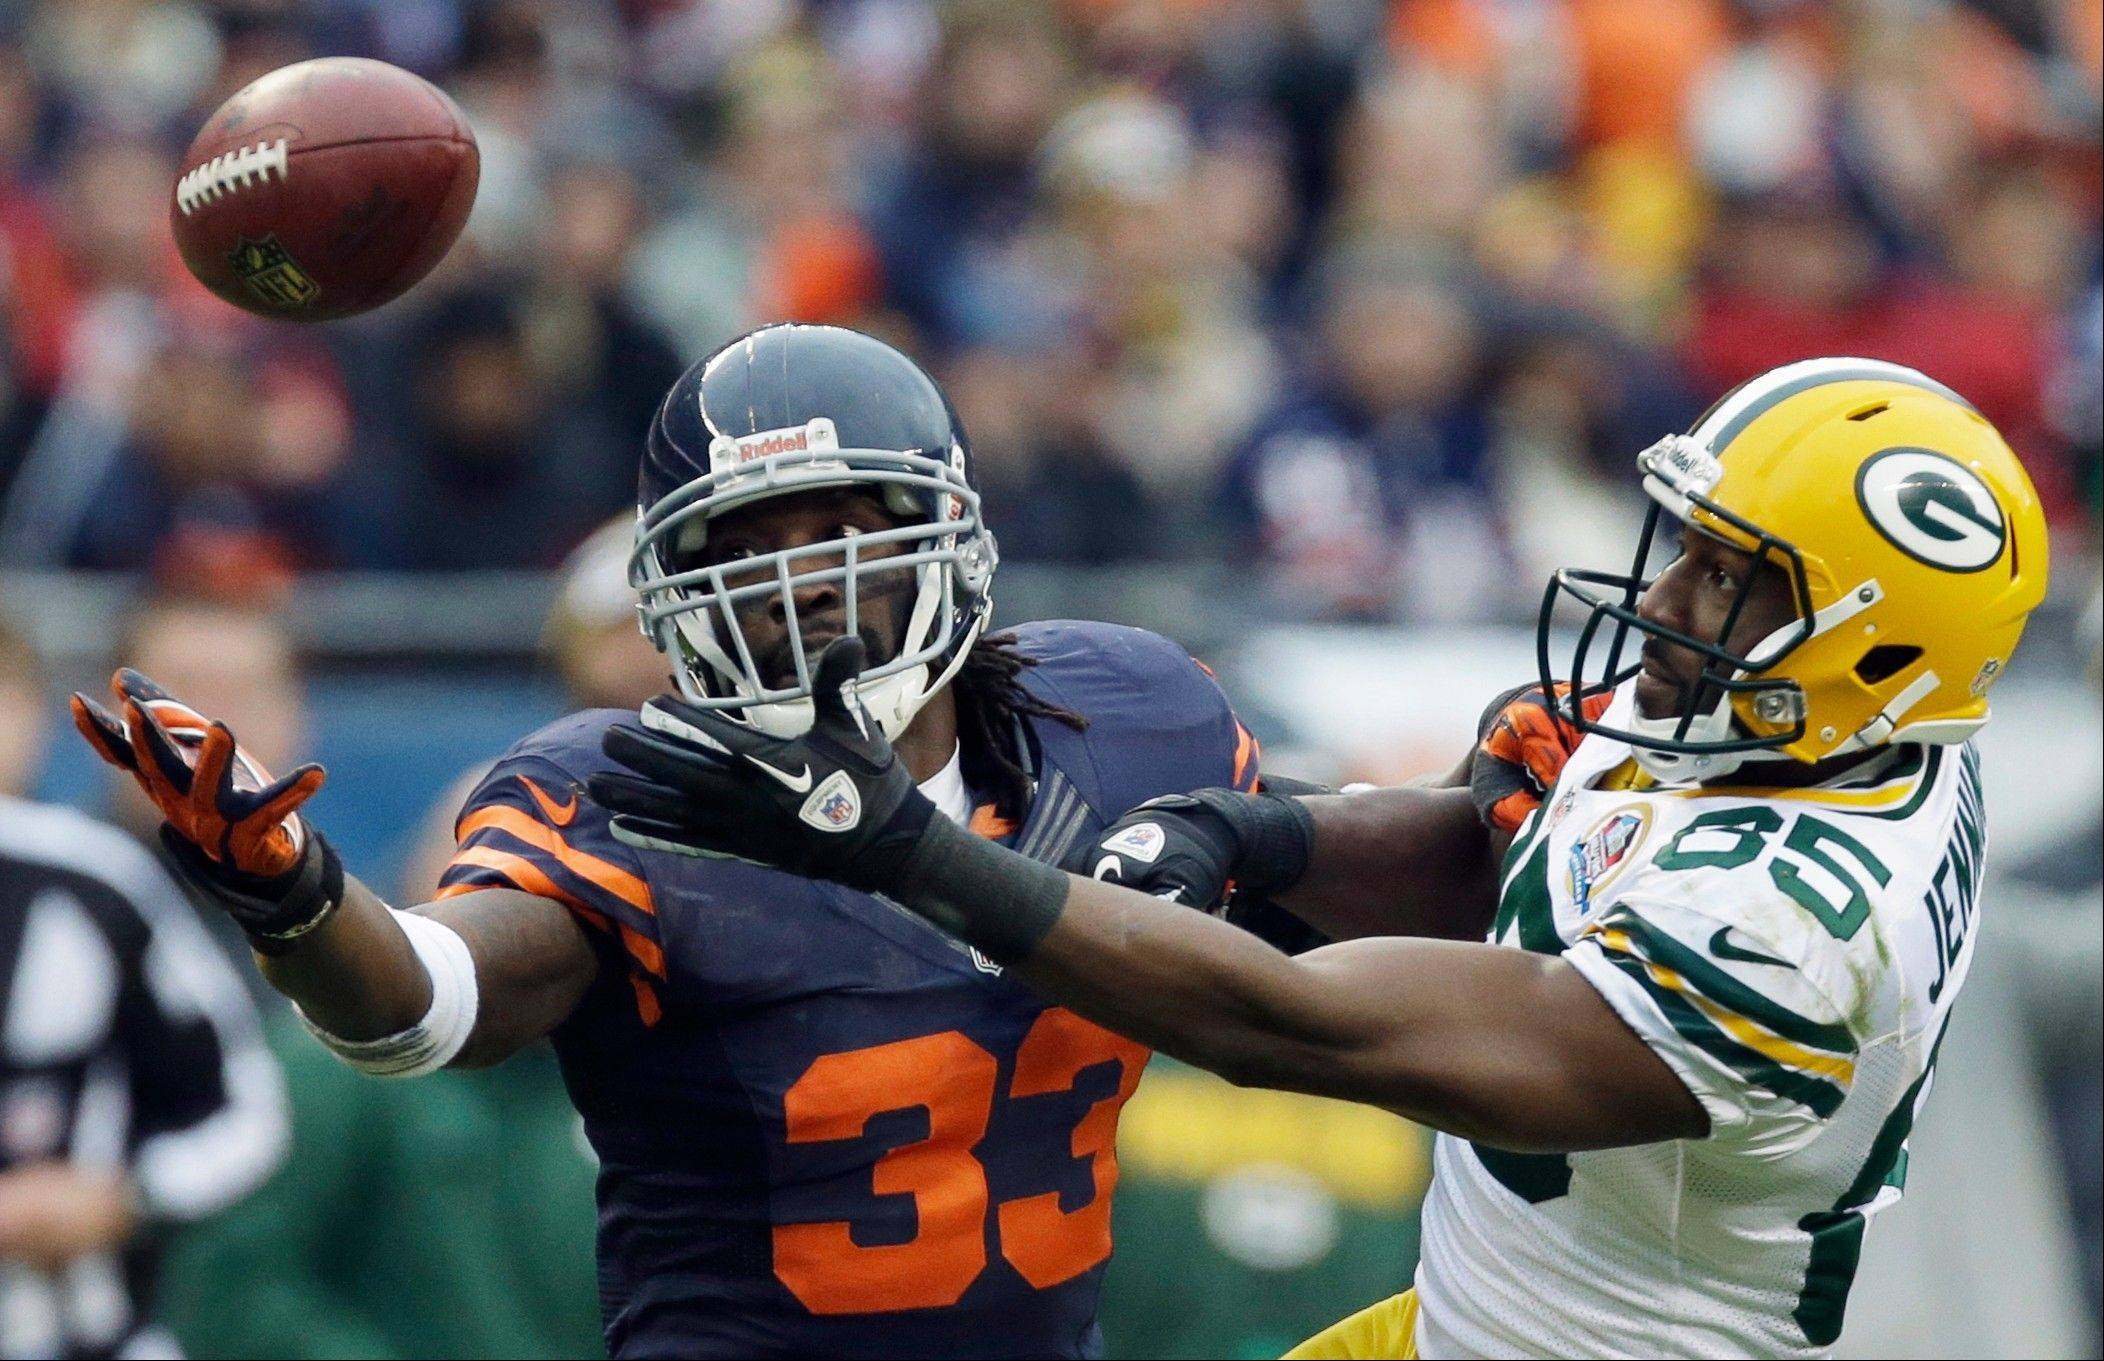 Chicago Bears cornerback Charles Tillman (33) breaks up a pass intended for Green Bay Packers wide receiver Greg Jennings (85) in the second half Sunday. The Packers won 21-13 to clinch the NFC North division title.